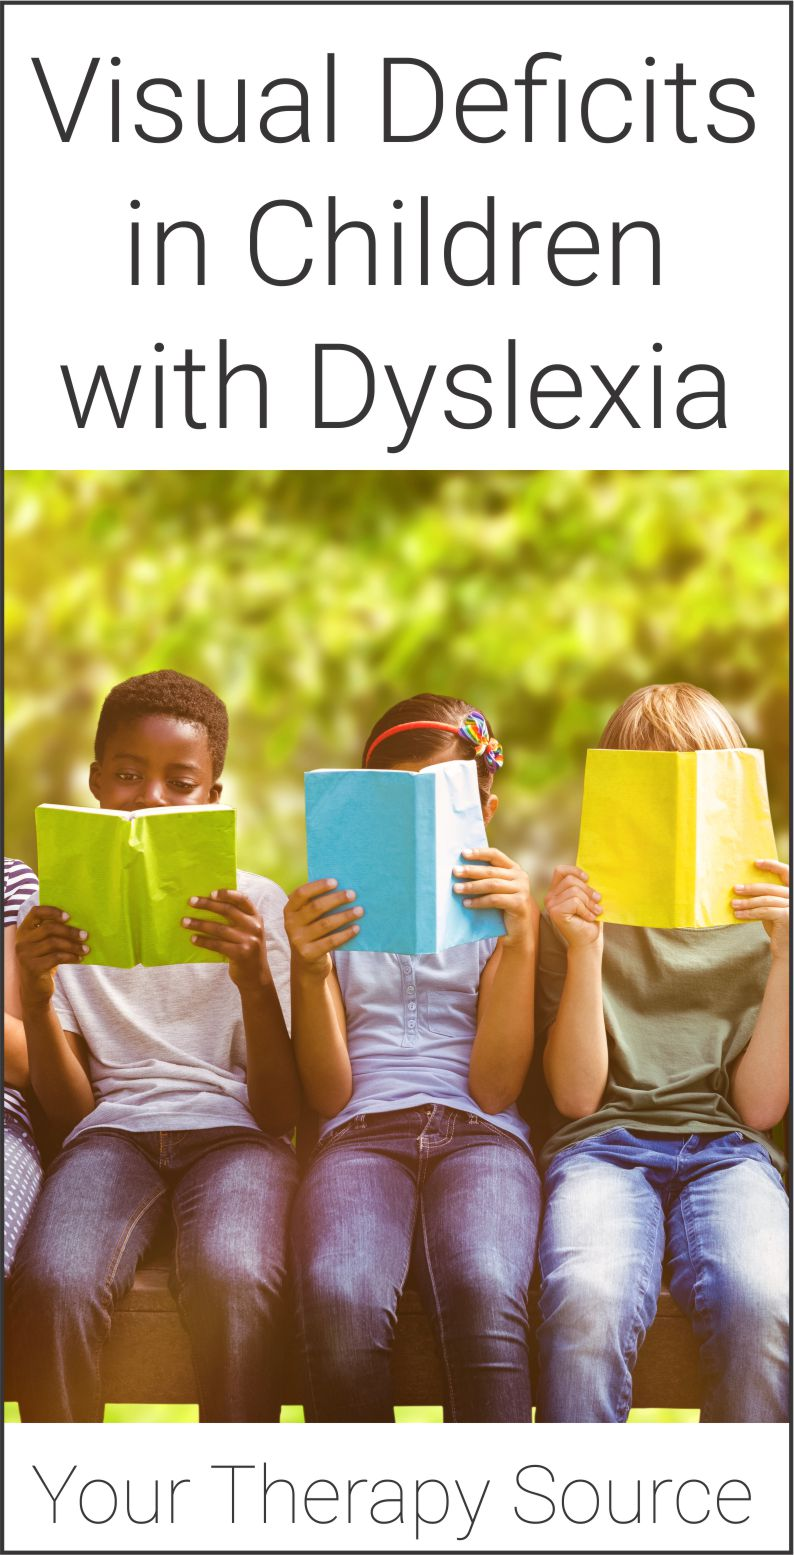 Research indicates that the core cognitive deficit in dyslexia involves language (phonological) processing.  Since reading is also a visual task, researchers explored the potential role of visual deficits in children with dyslexia.